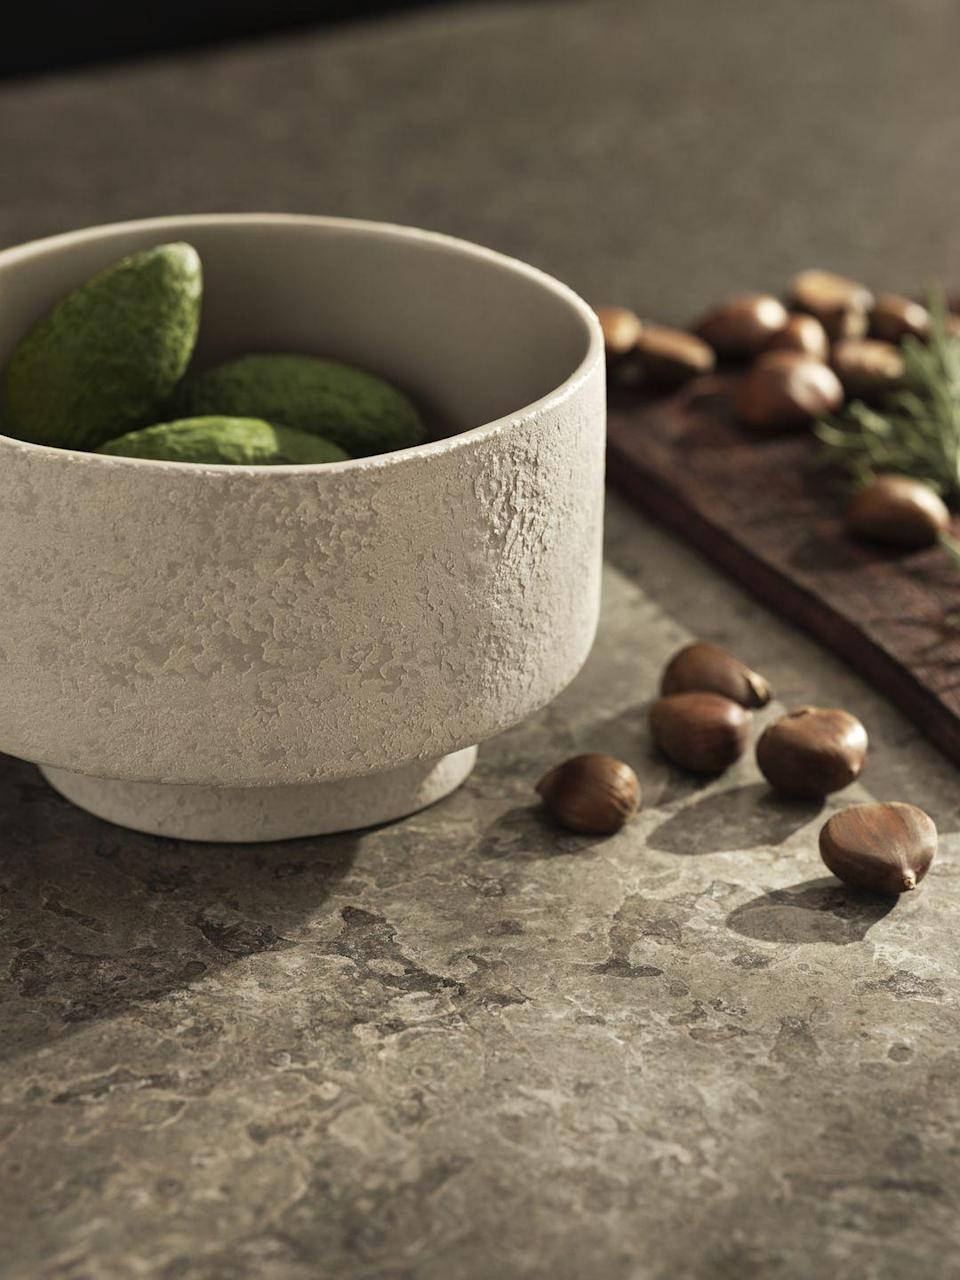 """<p>Style your summer table with beautifully crafted details, such as this versatile white bowl. Place on a table with fruits, or bring out at a BBQ with a delicious selection of treats. </p><p><a class=""""link rapid-noclick-resp"""" href=""""https://go.redirectingat.com?id=127X1599956&url=https%3A%2F%2Fwww2.hm.com%2Fen_gb%2Fhome.html&sref=https%3A%2F%2Fwww.housebeautiful.com%2Fuk%2Flifestyle%2Fshopping%2Fg36671419%2Fhandm-home-love-of-craft-collection-artisans%2F"""" rel=""""nofollow noopener"""" target=""""_blank"""" data-ylk=""""slk:COMING SOON"""">COMING SOON</a></p><p><strong>Like this article? <a href=""""https://hearst.emsecure.net/optiext/cr.aspx?ID=DR9UY9ko5HvLAHeexA2ngSL3t49WvQXSjQZAAXe9gg0Rhtz8pxOWix3TXd_WRbE3fnbQEBkC%2BEWZDx"""" rel=""""nofollow noopener"""" target=""""_blank"""" data-ylk=""""slk:Sign up to our newsletter"""" class=""""link rapid-noclick-resp"""">Sign up to our newsletter</a> to get more articles like this delivered straight to your inbox.</strong></p><p><a class=""""link rapid-noclick-resp"""" href=""""https://hearst.emsecure.net/optiext/cr.aspx?ID=DR9UY9ko5HvLAHeexA2ngSL3t49WvQXSjQZAAXe9gg0Rhtz8pxOWix3TXd_WRbE3fnbQEBkC%2BEWZDx"""" rel=""""nofollow noopener"""" target=""""_blank"""" data-ylk=""""slk:SIGN UP"""">SIGN UP</a></p><p>Love what you're reading? Enjoy <a href=""""https://go.redirectingat.com?id=127X1599956&url=https%3A%2F%2Fwww.hearstmagazines.co.uk%2Fhb%2Fhouse-beautiful-magazine-subscription-website&sref=https%3A%2F%2Fwww.housebeautiful.com%2Fuk%2Flifestyle%2Fshopping%2Fg36671419%2Fhandm-home-love-of-craft-collection-artisans%2F"""" rel=""""nofollow noopener"""" target=""""_blank"""" data-ylk=""""slk:House Beautiful magazine"""" class=""""link rapid-noclick-resp"""">House Beautiful magazine</a> delivered straight to your door every month with Free UK delivery. Buy direct from the publisher for the lowest price and never miss an issue!</p>"""